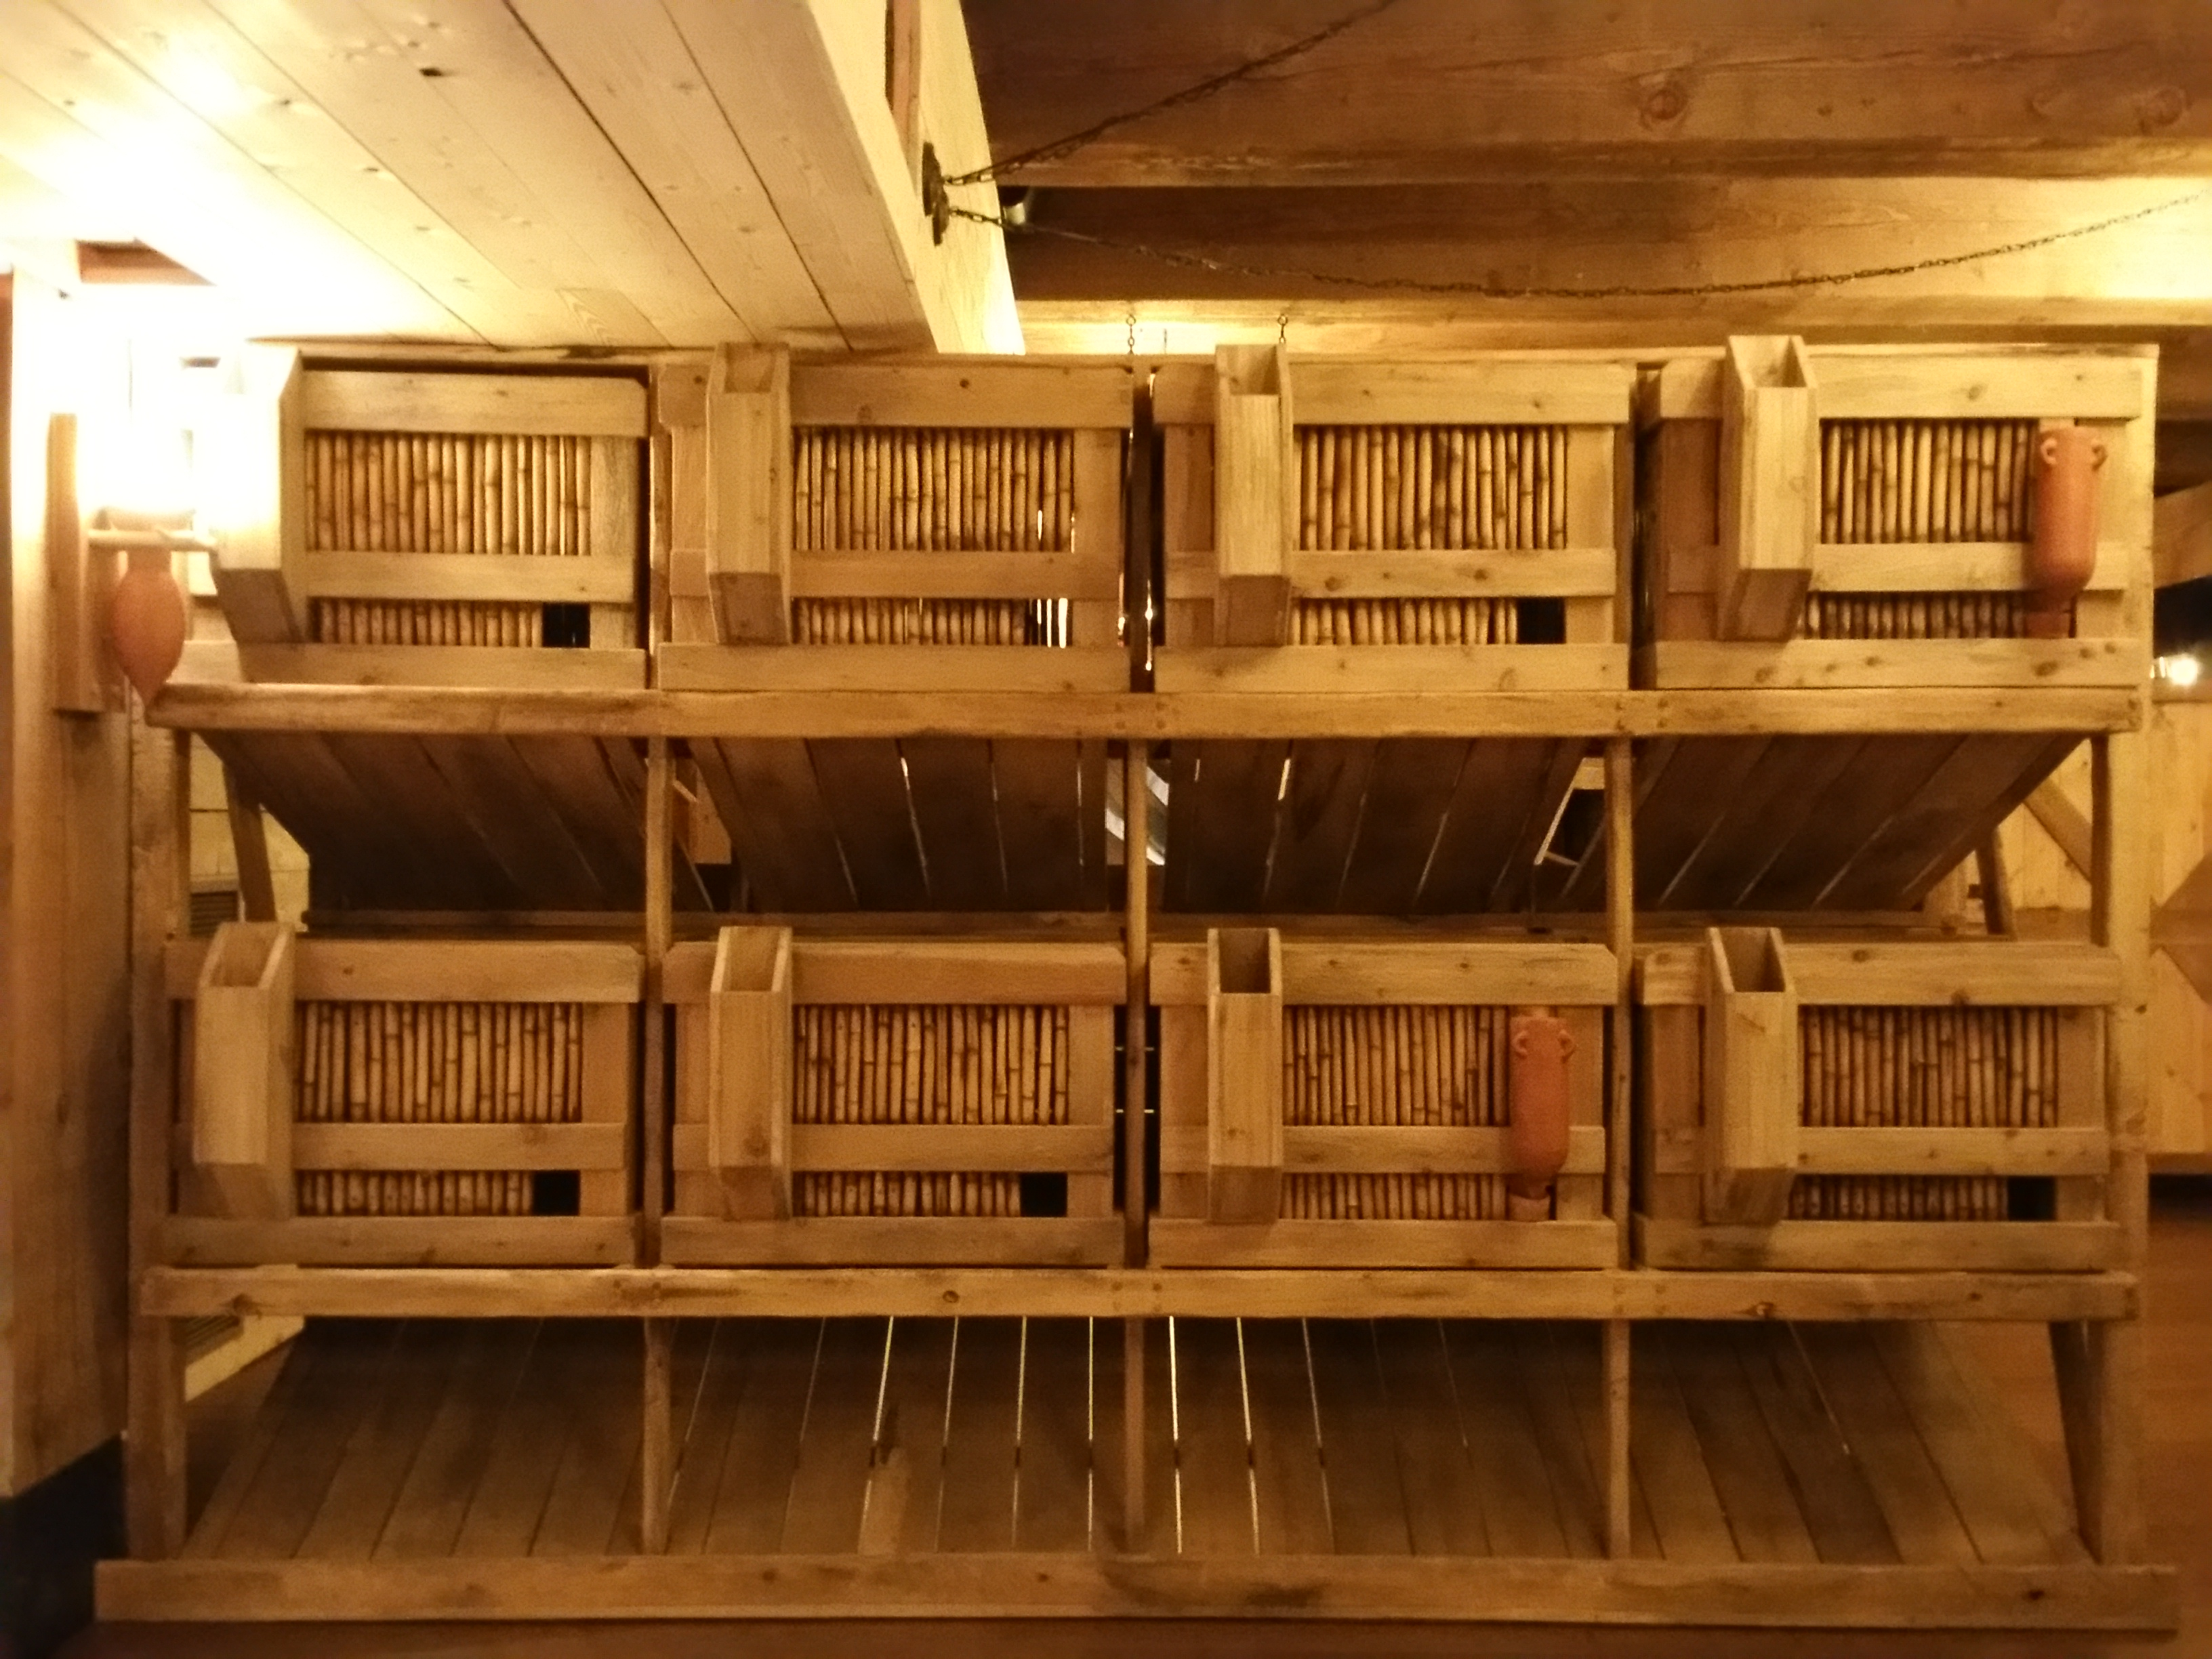 Here's an example of housing for small animals. The back would have had feeding troughs, where each person on the ark could simply go behind and feed all the animals at once!